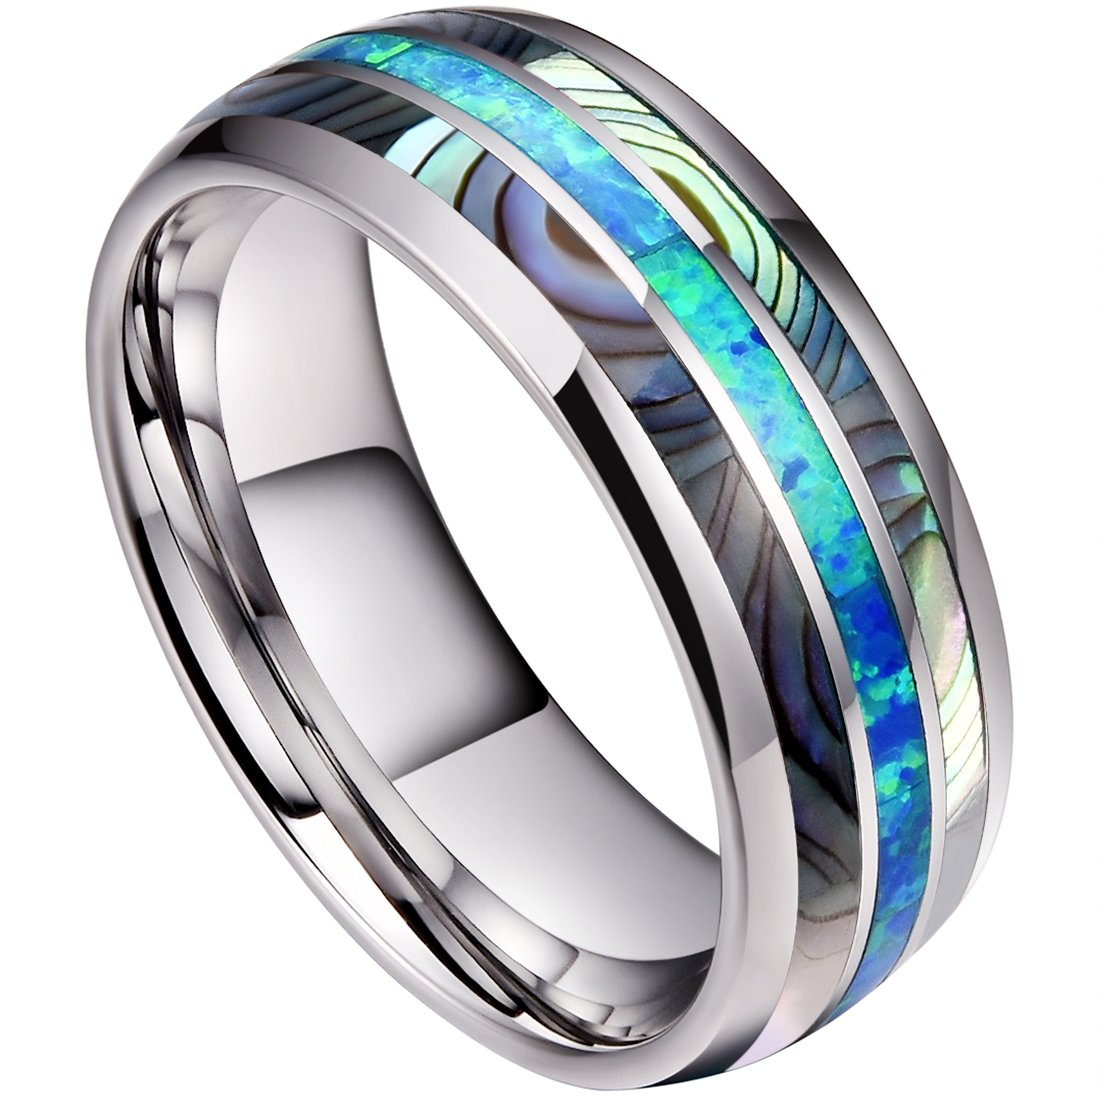 DOUX 8mm Mens Tungsten Carbide Ring Real Blue Opal & Abalone Shell Inlay Wedding Band High Polished 10.5